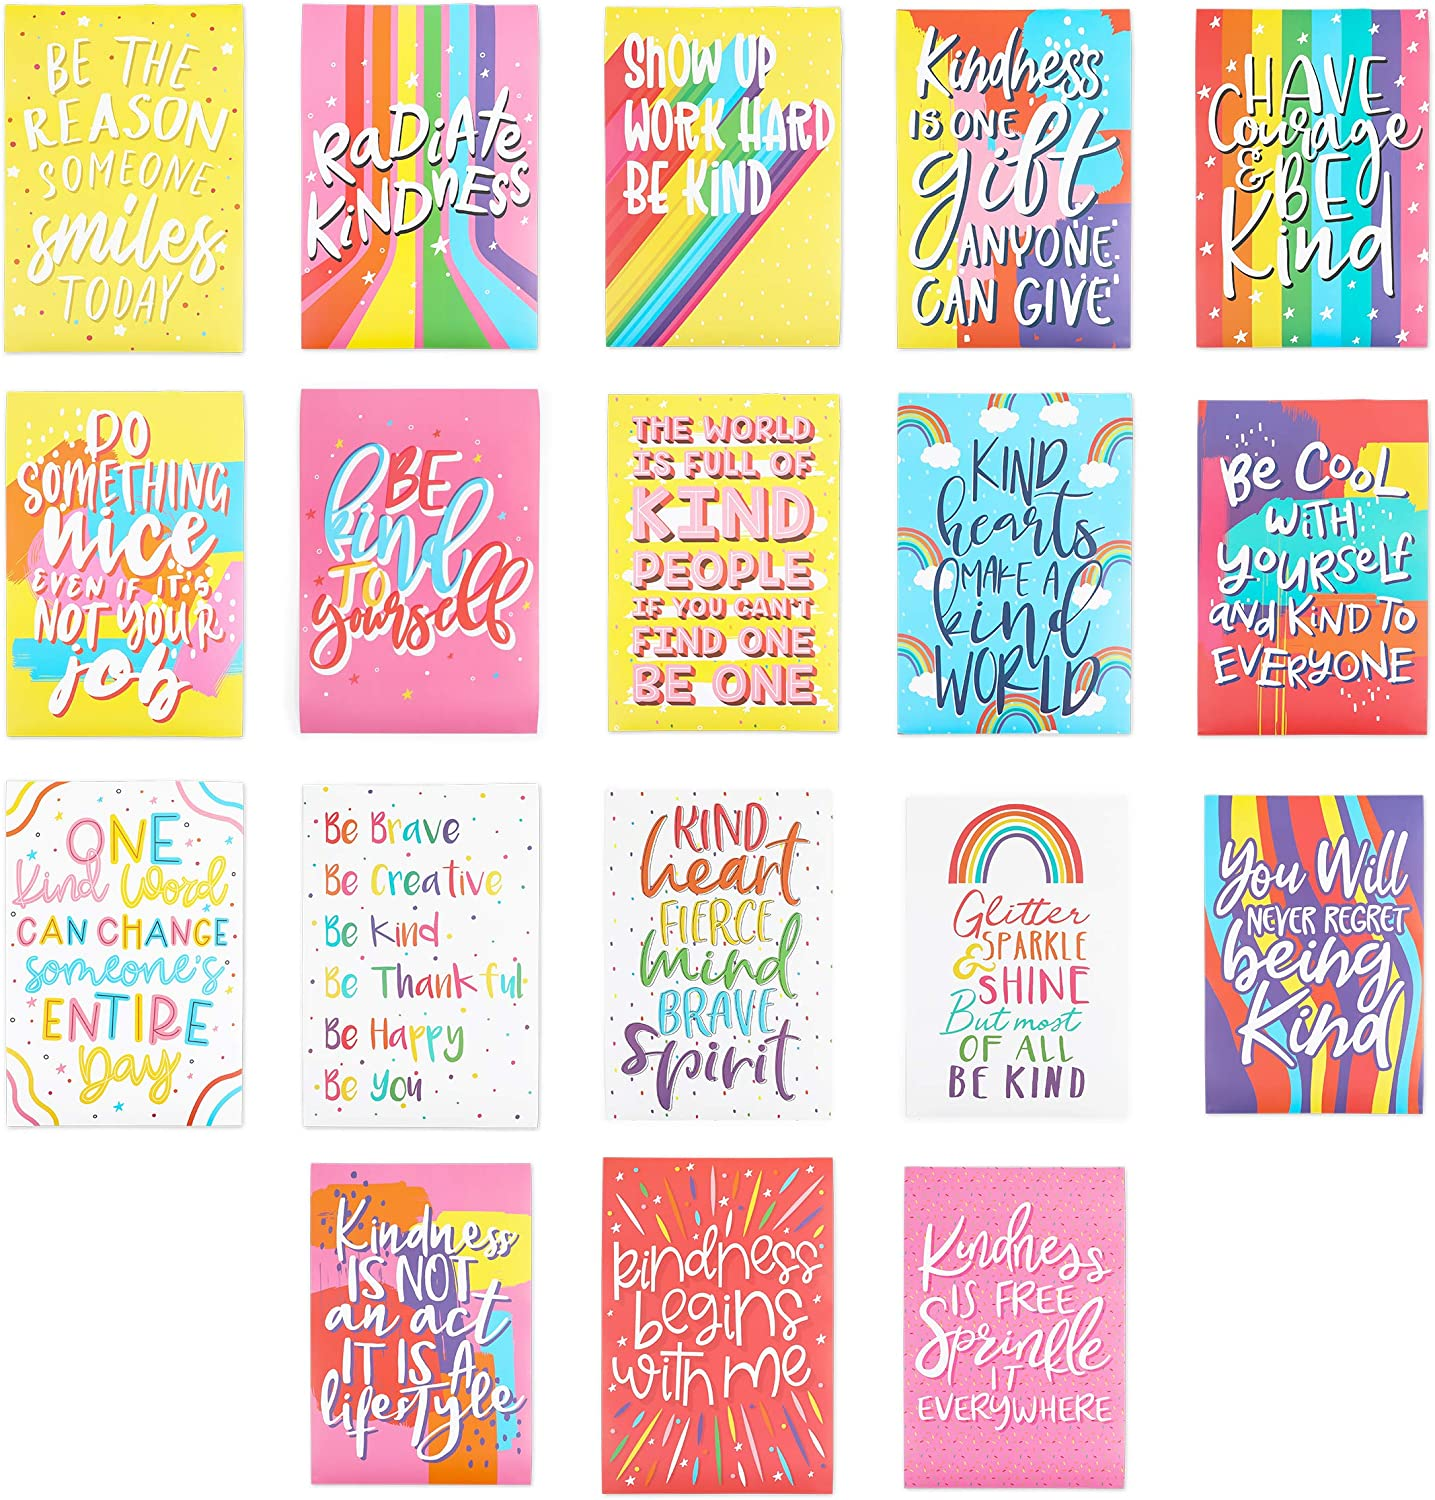 Kindness Posters Classroom and Wall Decor for Teachers (13 x 19 Inches, 20 Pack)